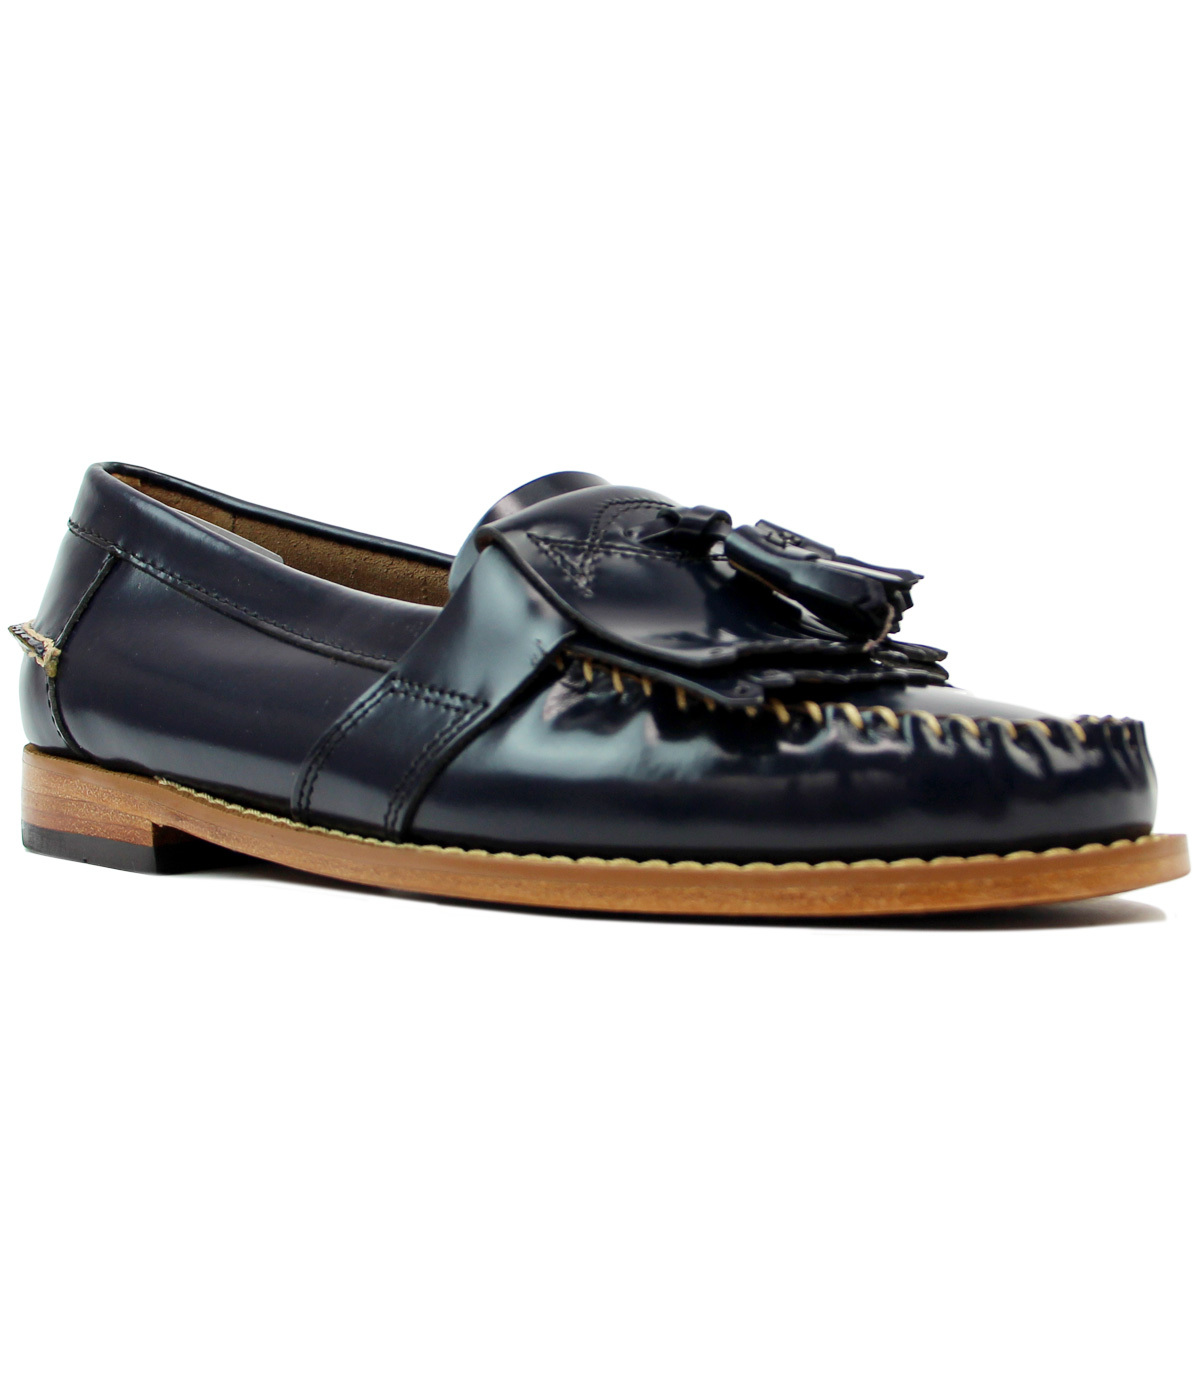 Elspeth Kiltie BASS WEEJUNS Retro Mod 60s Loafers